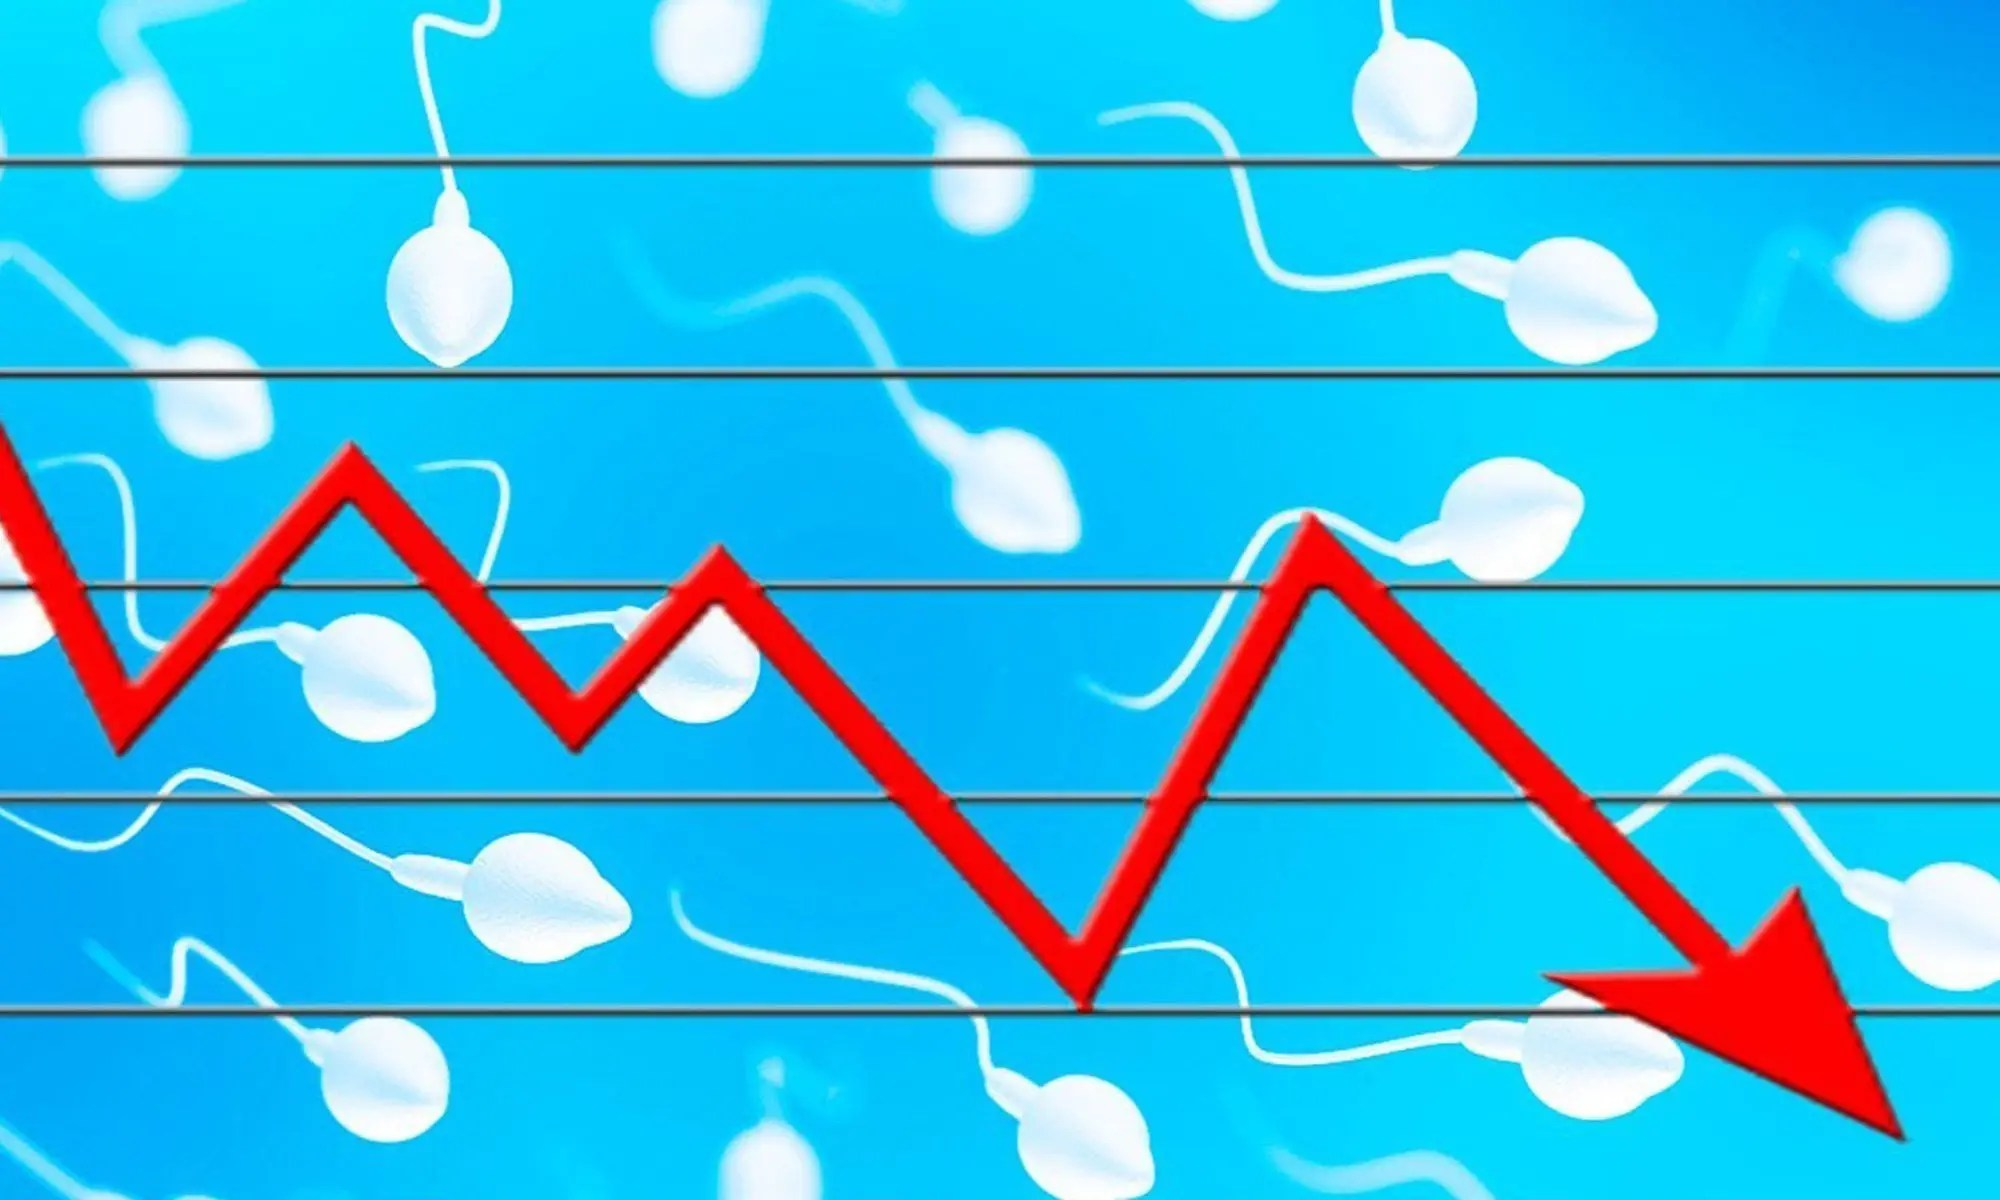 image of falling sperm counts